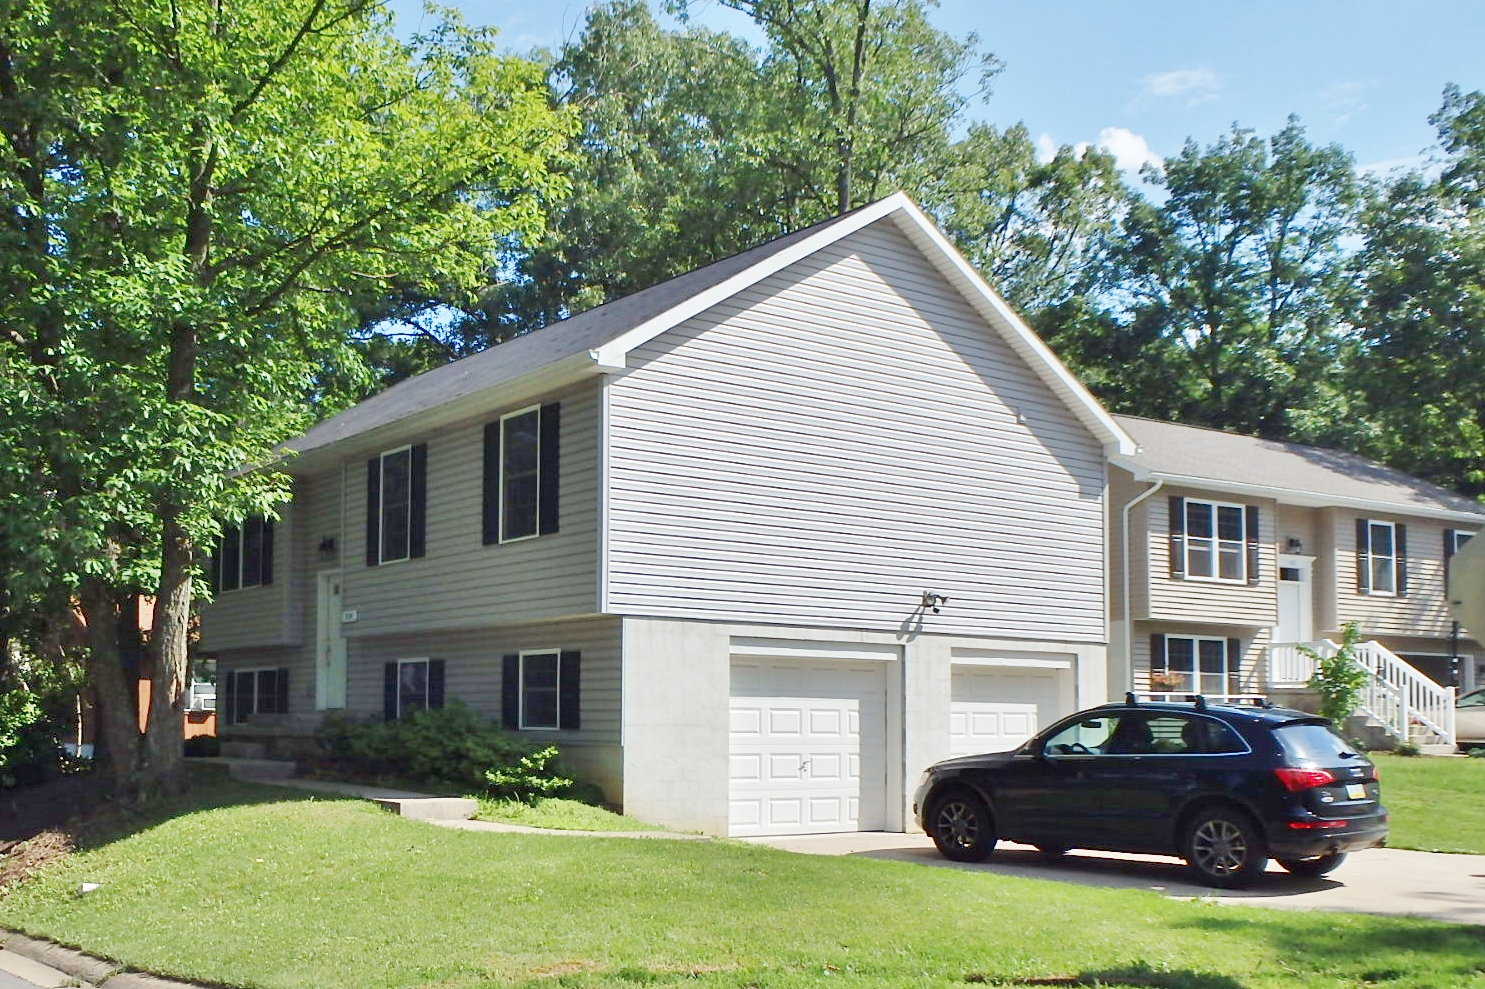 3-bedroom house for rent at 3104 Carnegie Drive in State College, PA.